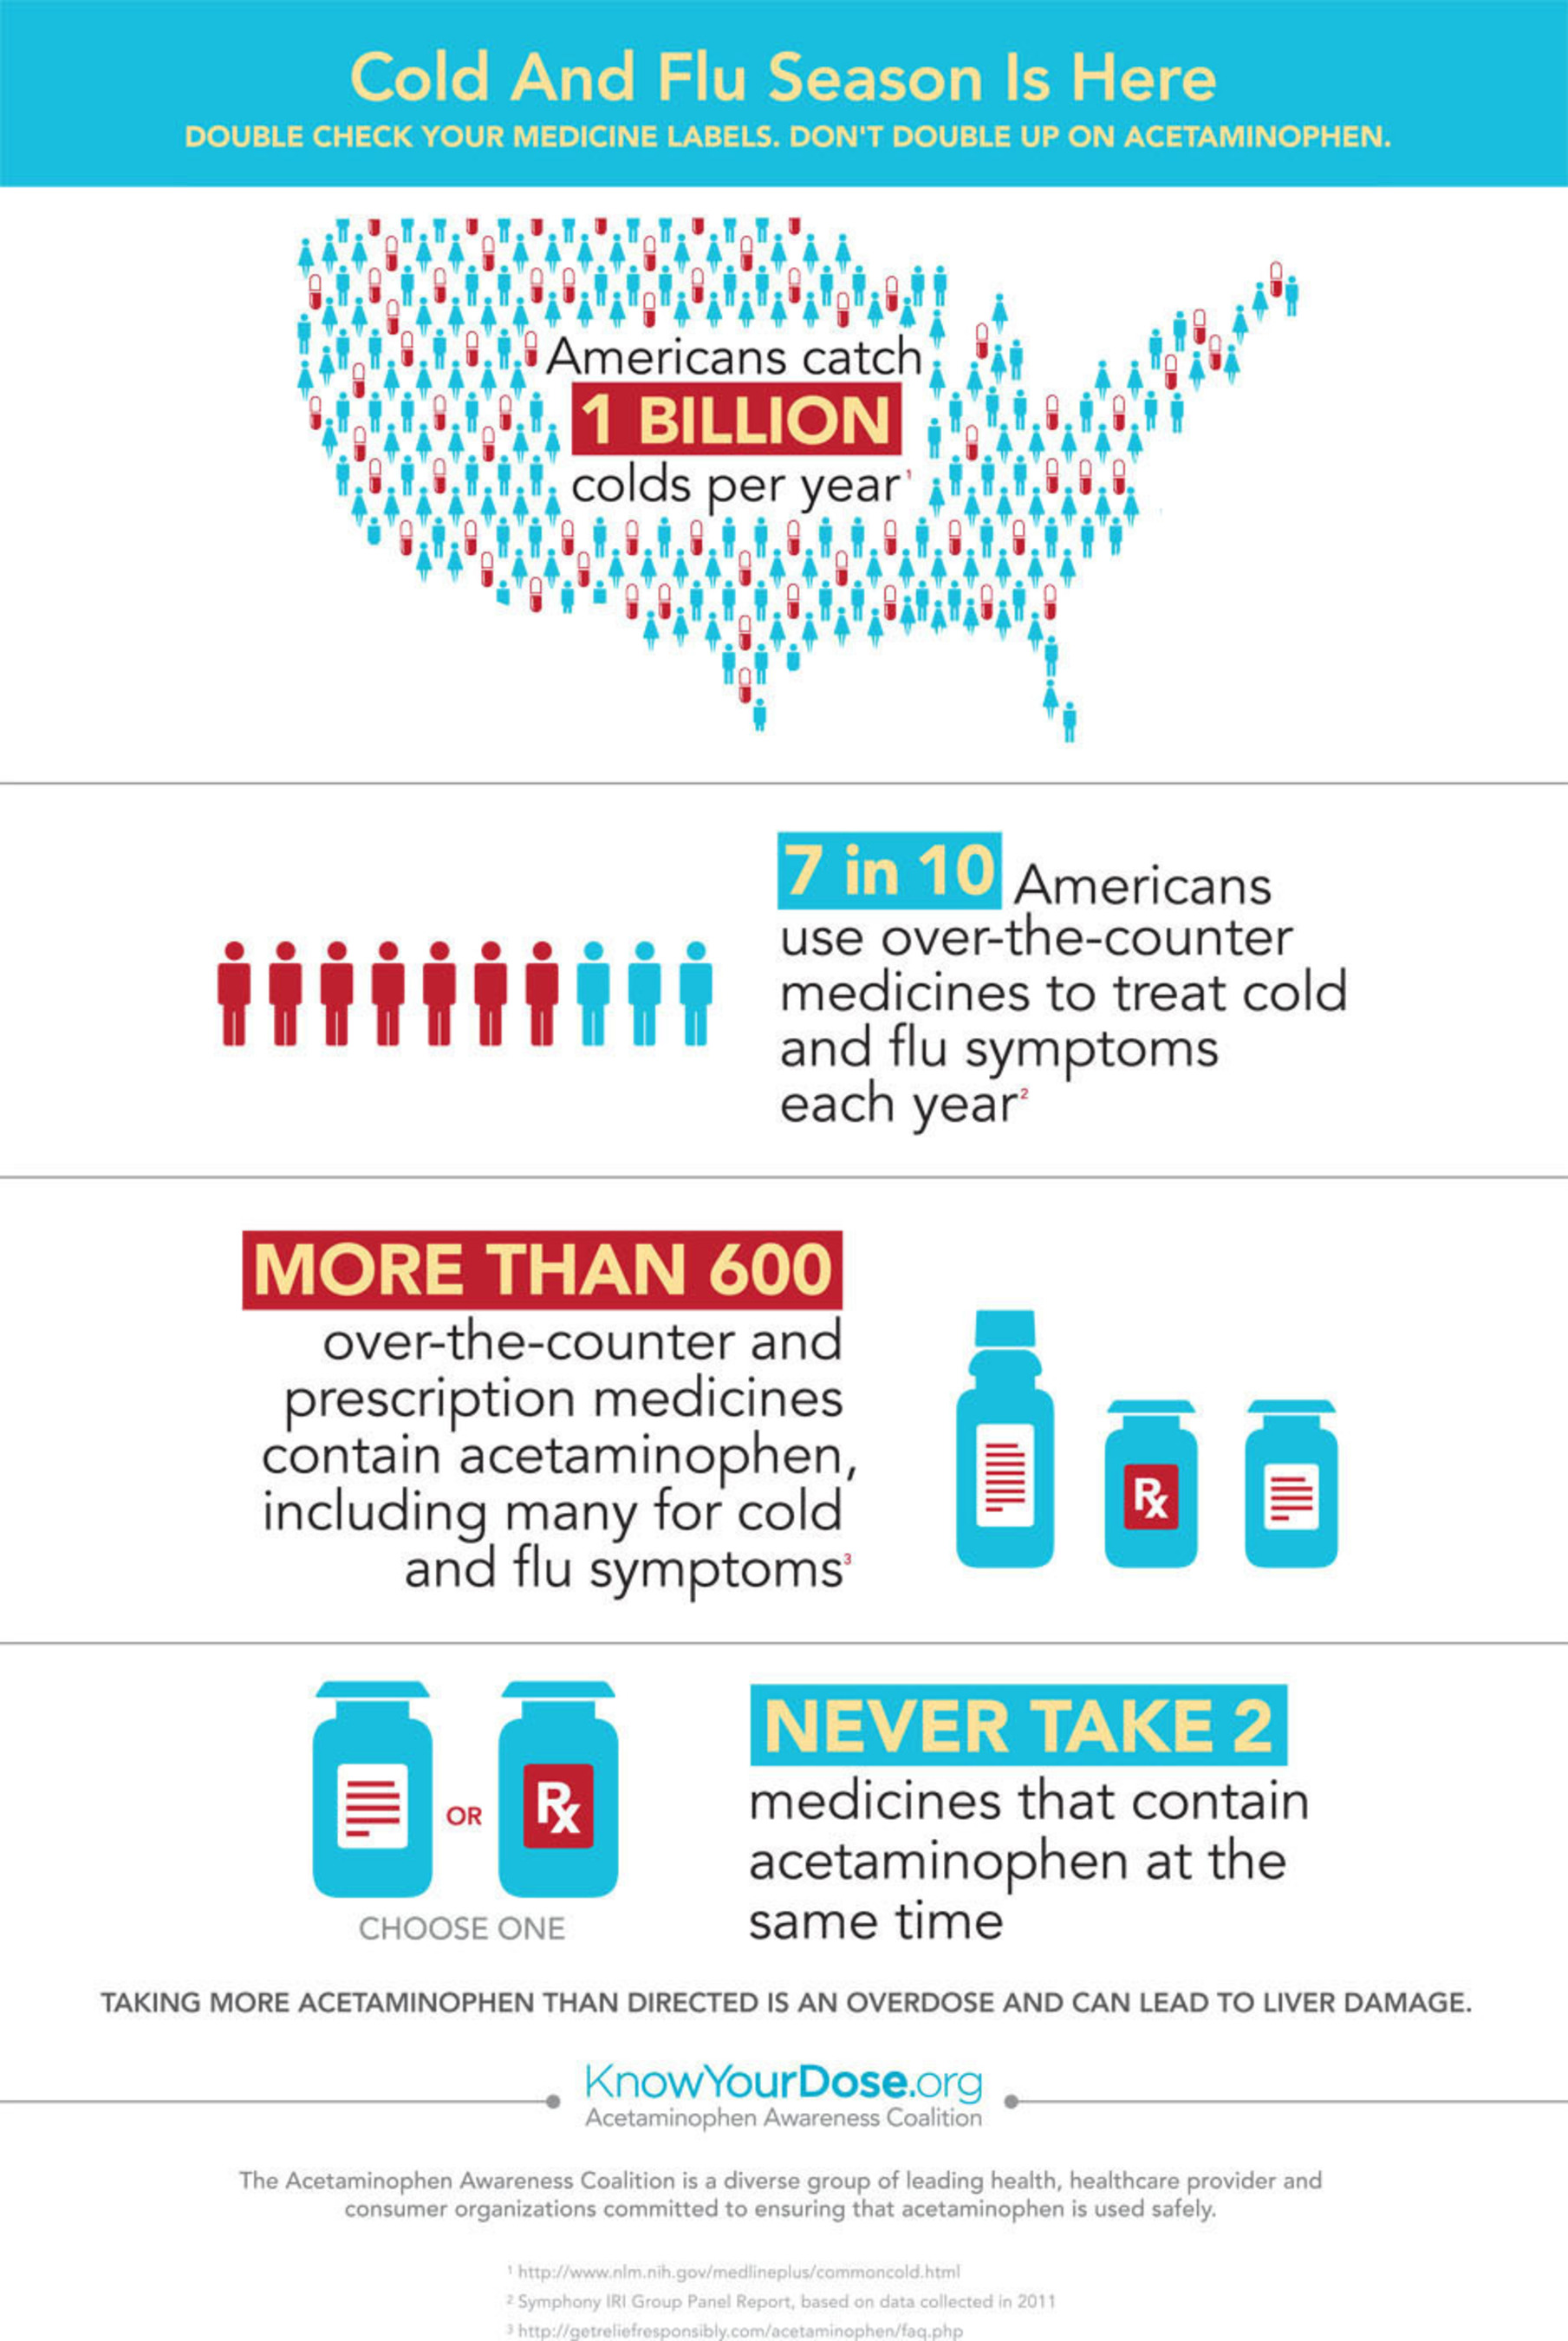 Double Check, Don't Double Up on acetaminophen. (PRNewsFoto/Acetaminophen Awareness Coalition) ...